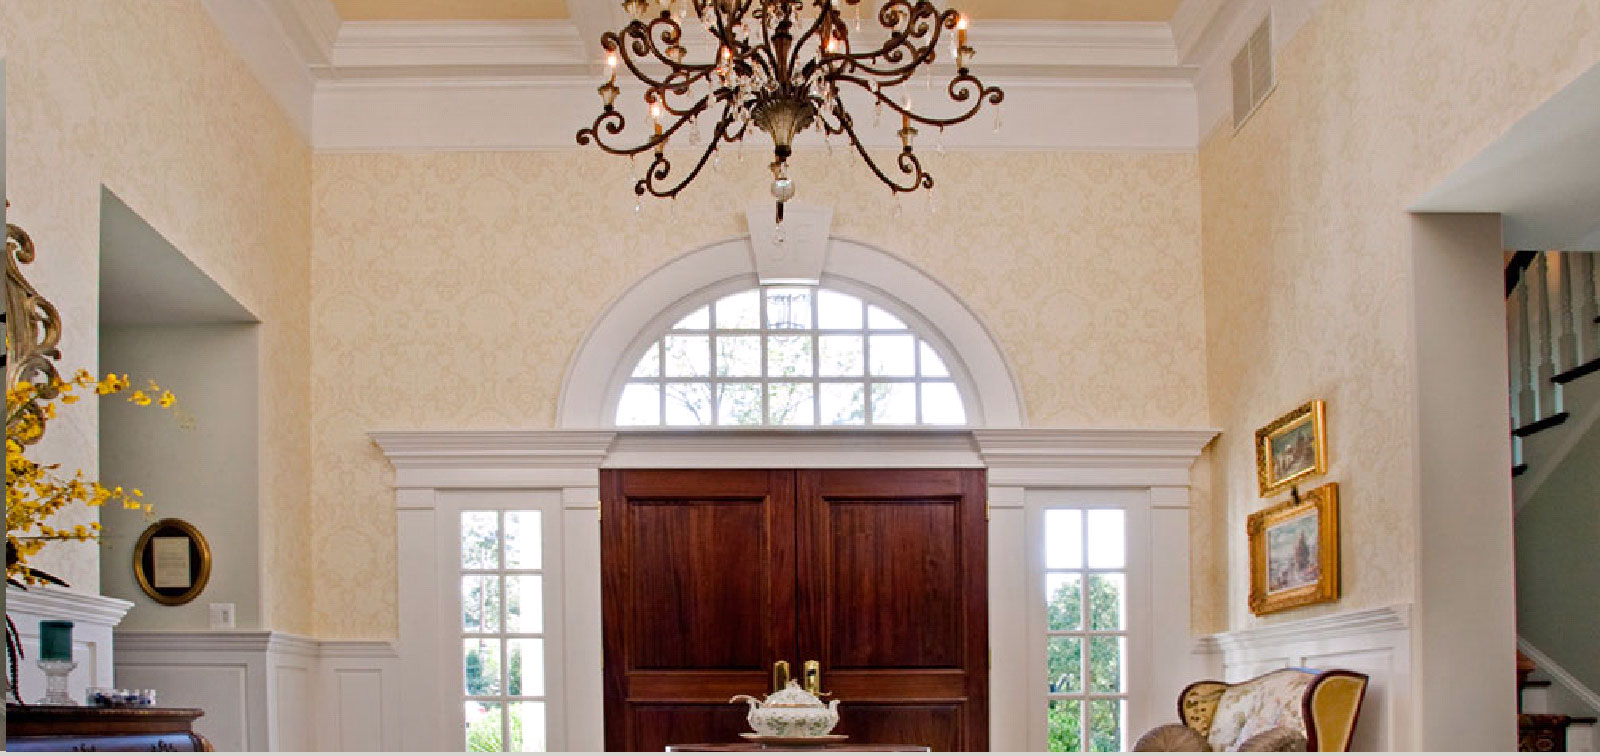 photo of great room foyer with chandelier hanging from coffered ceiling in front of palladium windows around custom finished doors